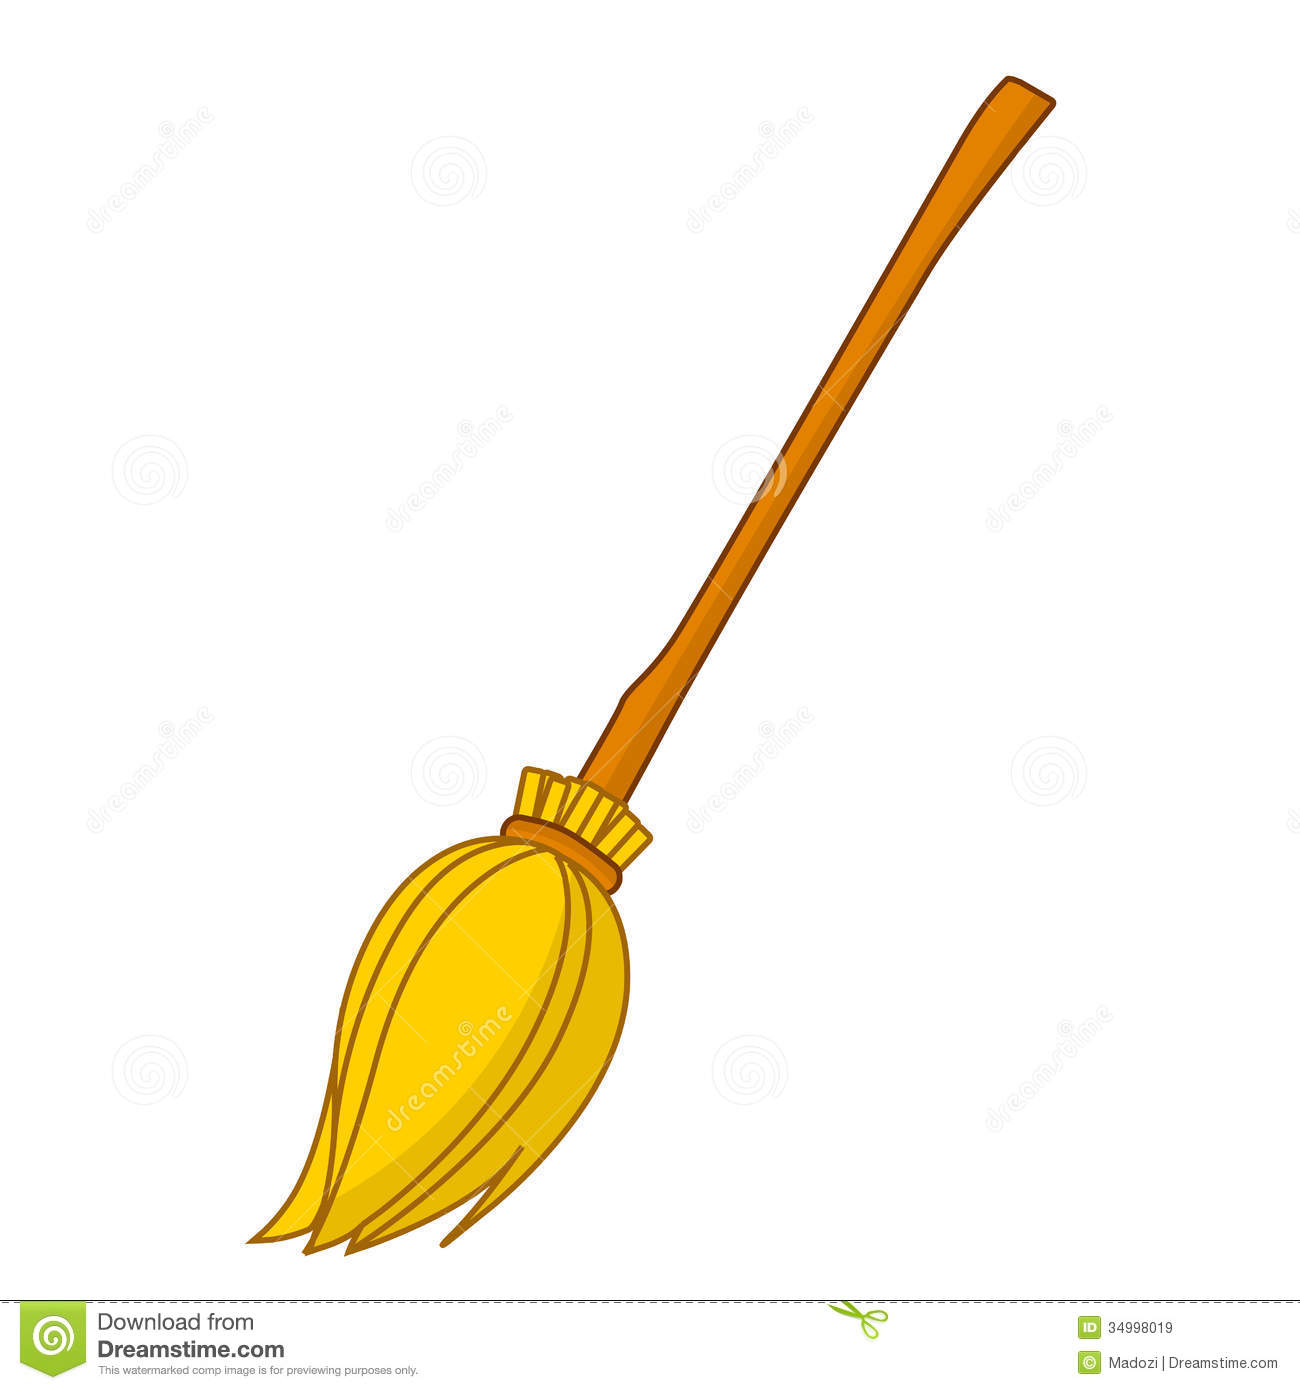 broom isolated illustration royalty free stock images